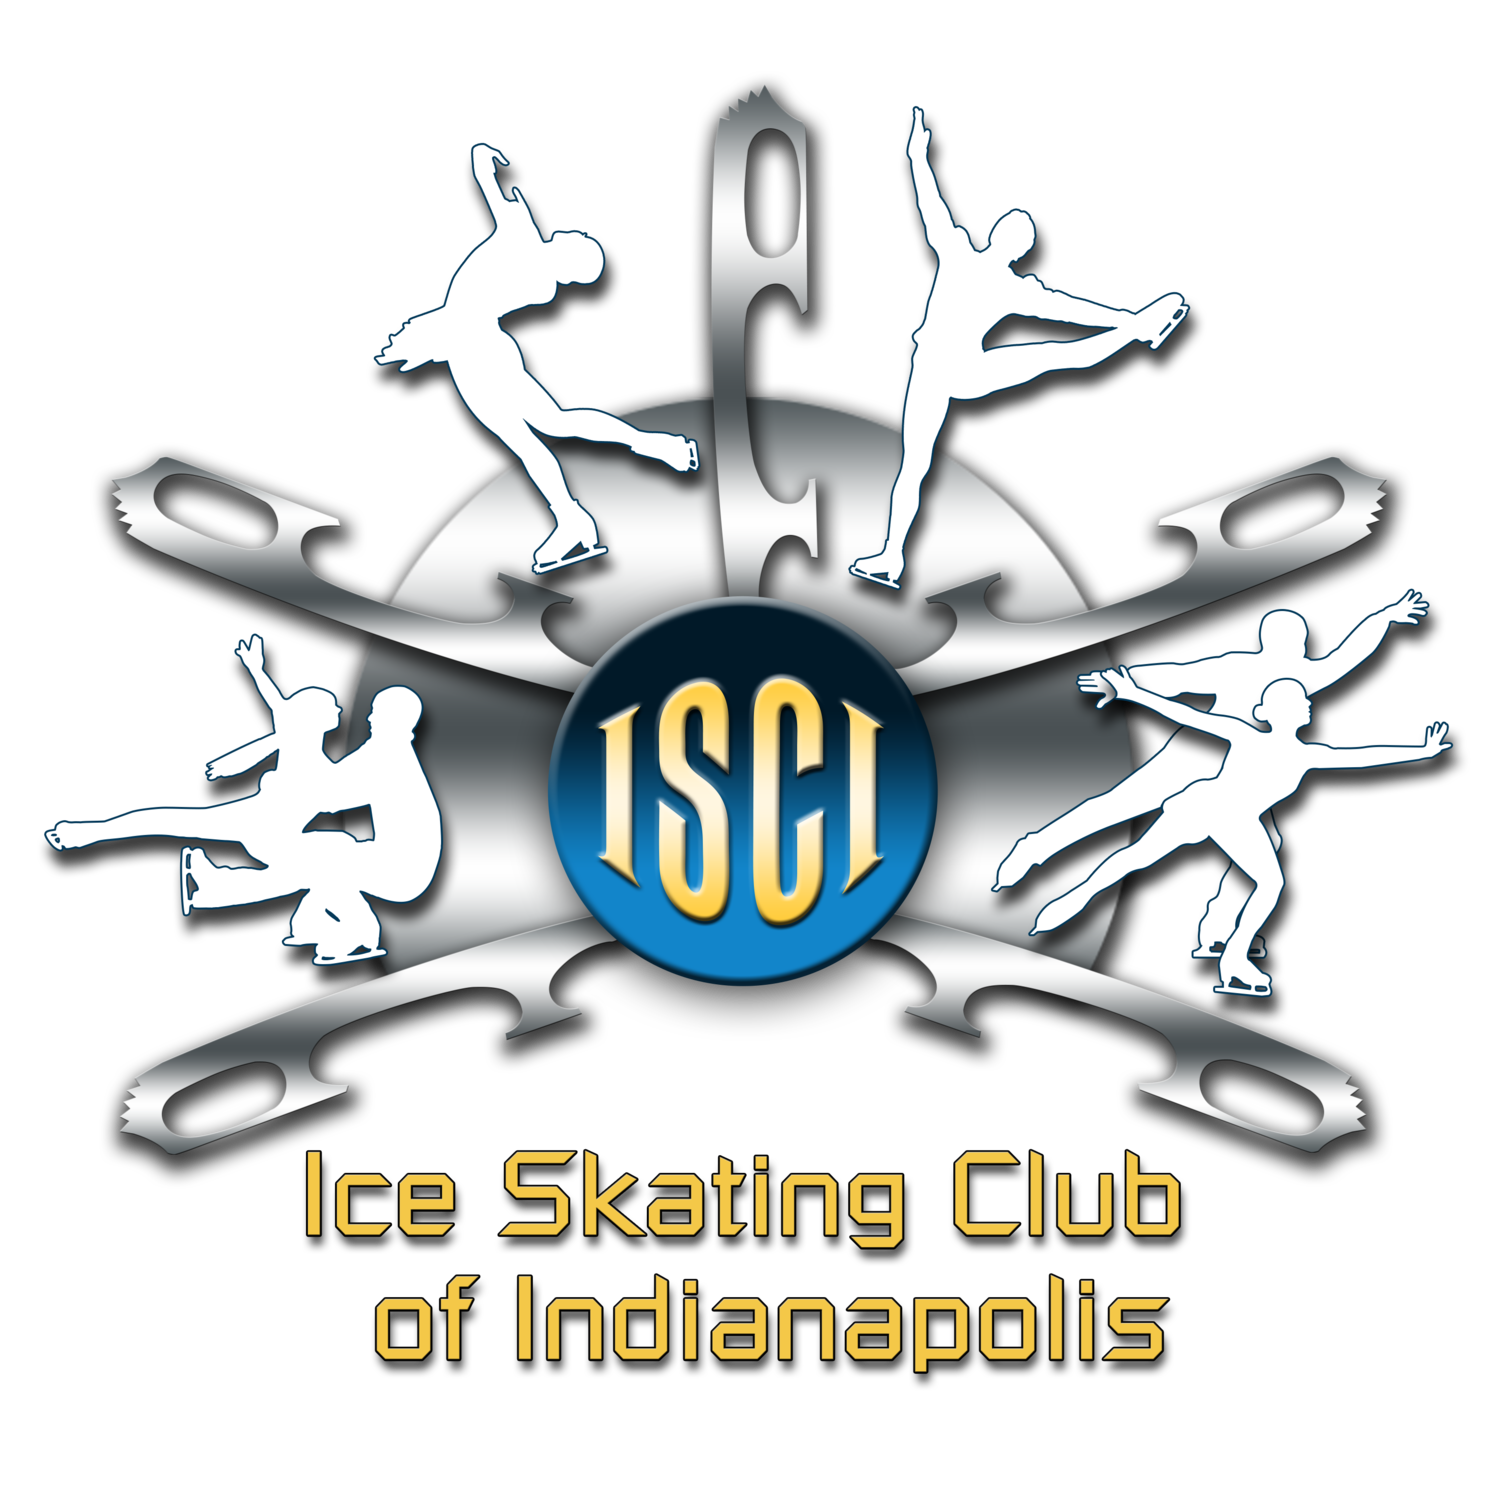 Ice Skating Club of Indianapolis